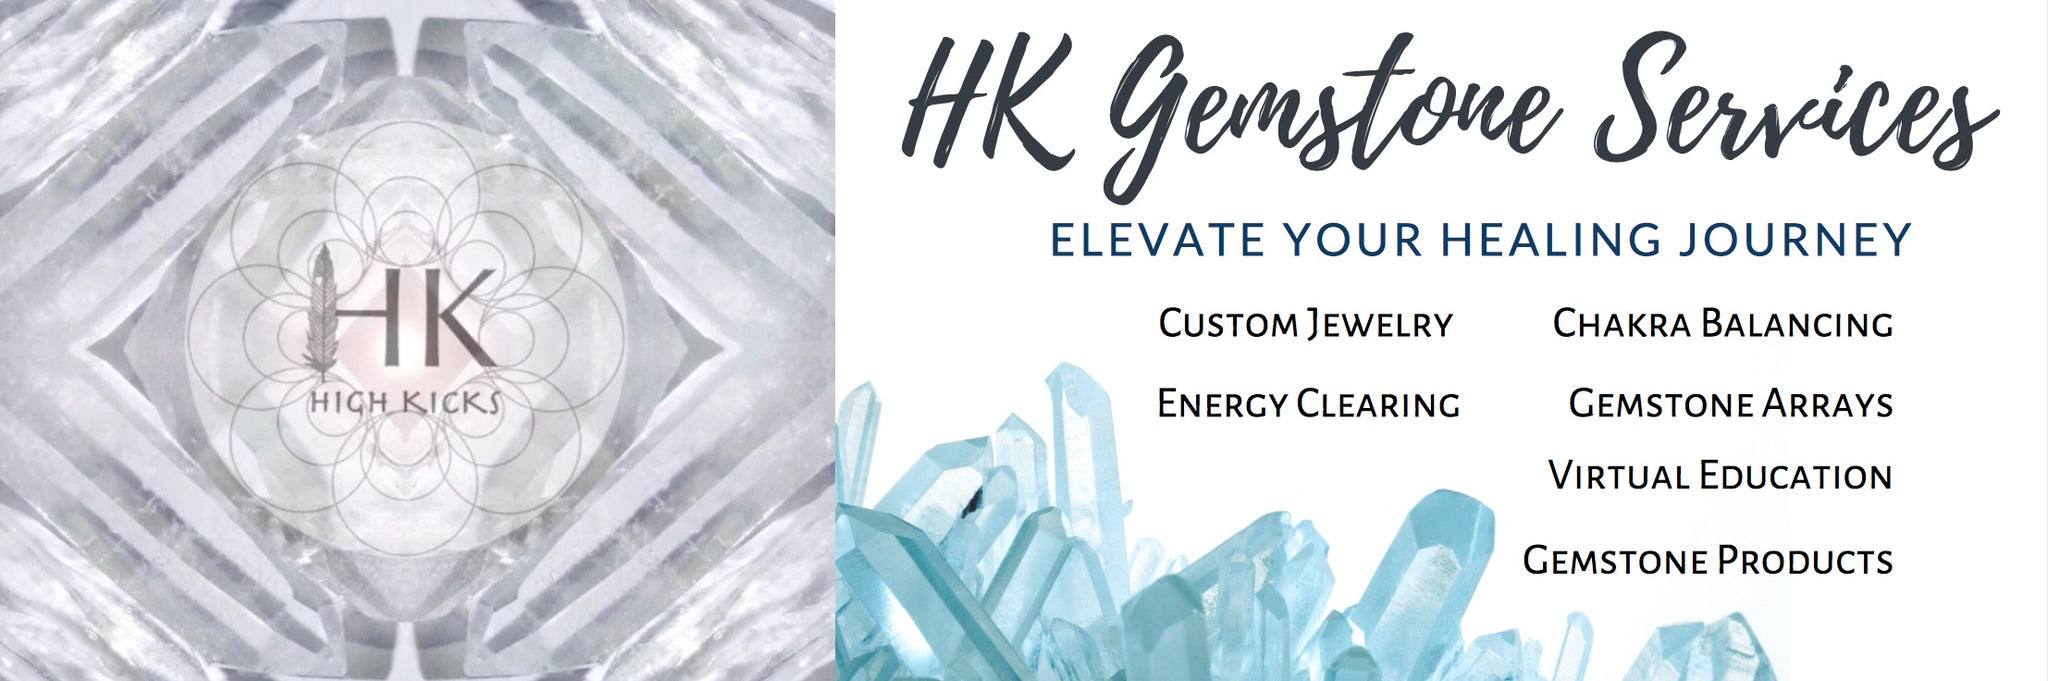 Virtual Gemstone Services - HK HIGH KICKS